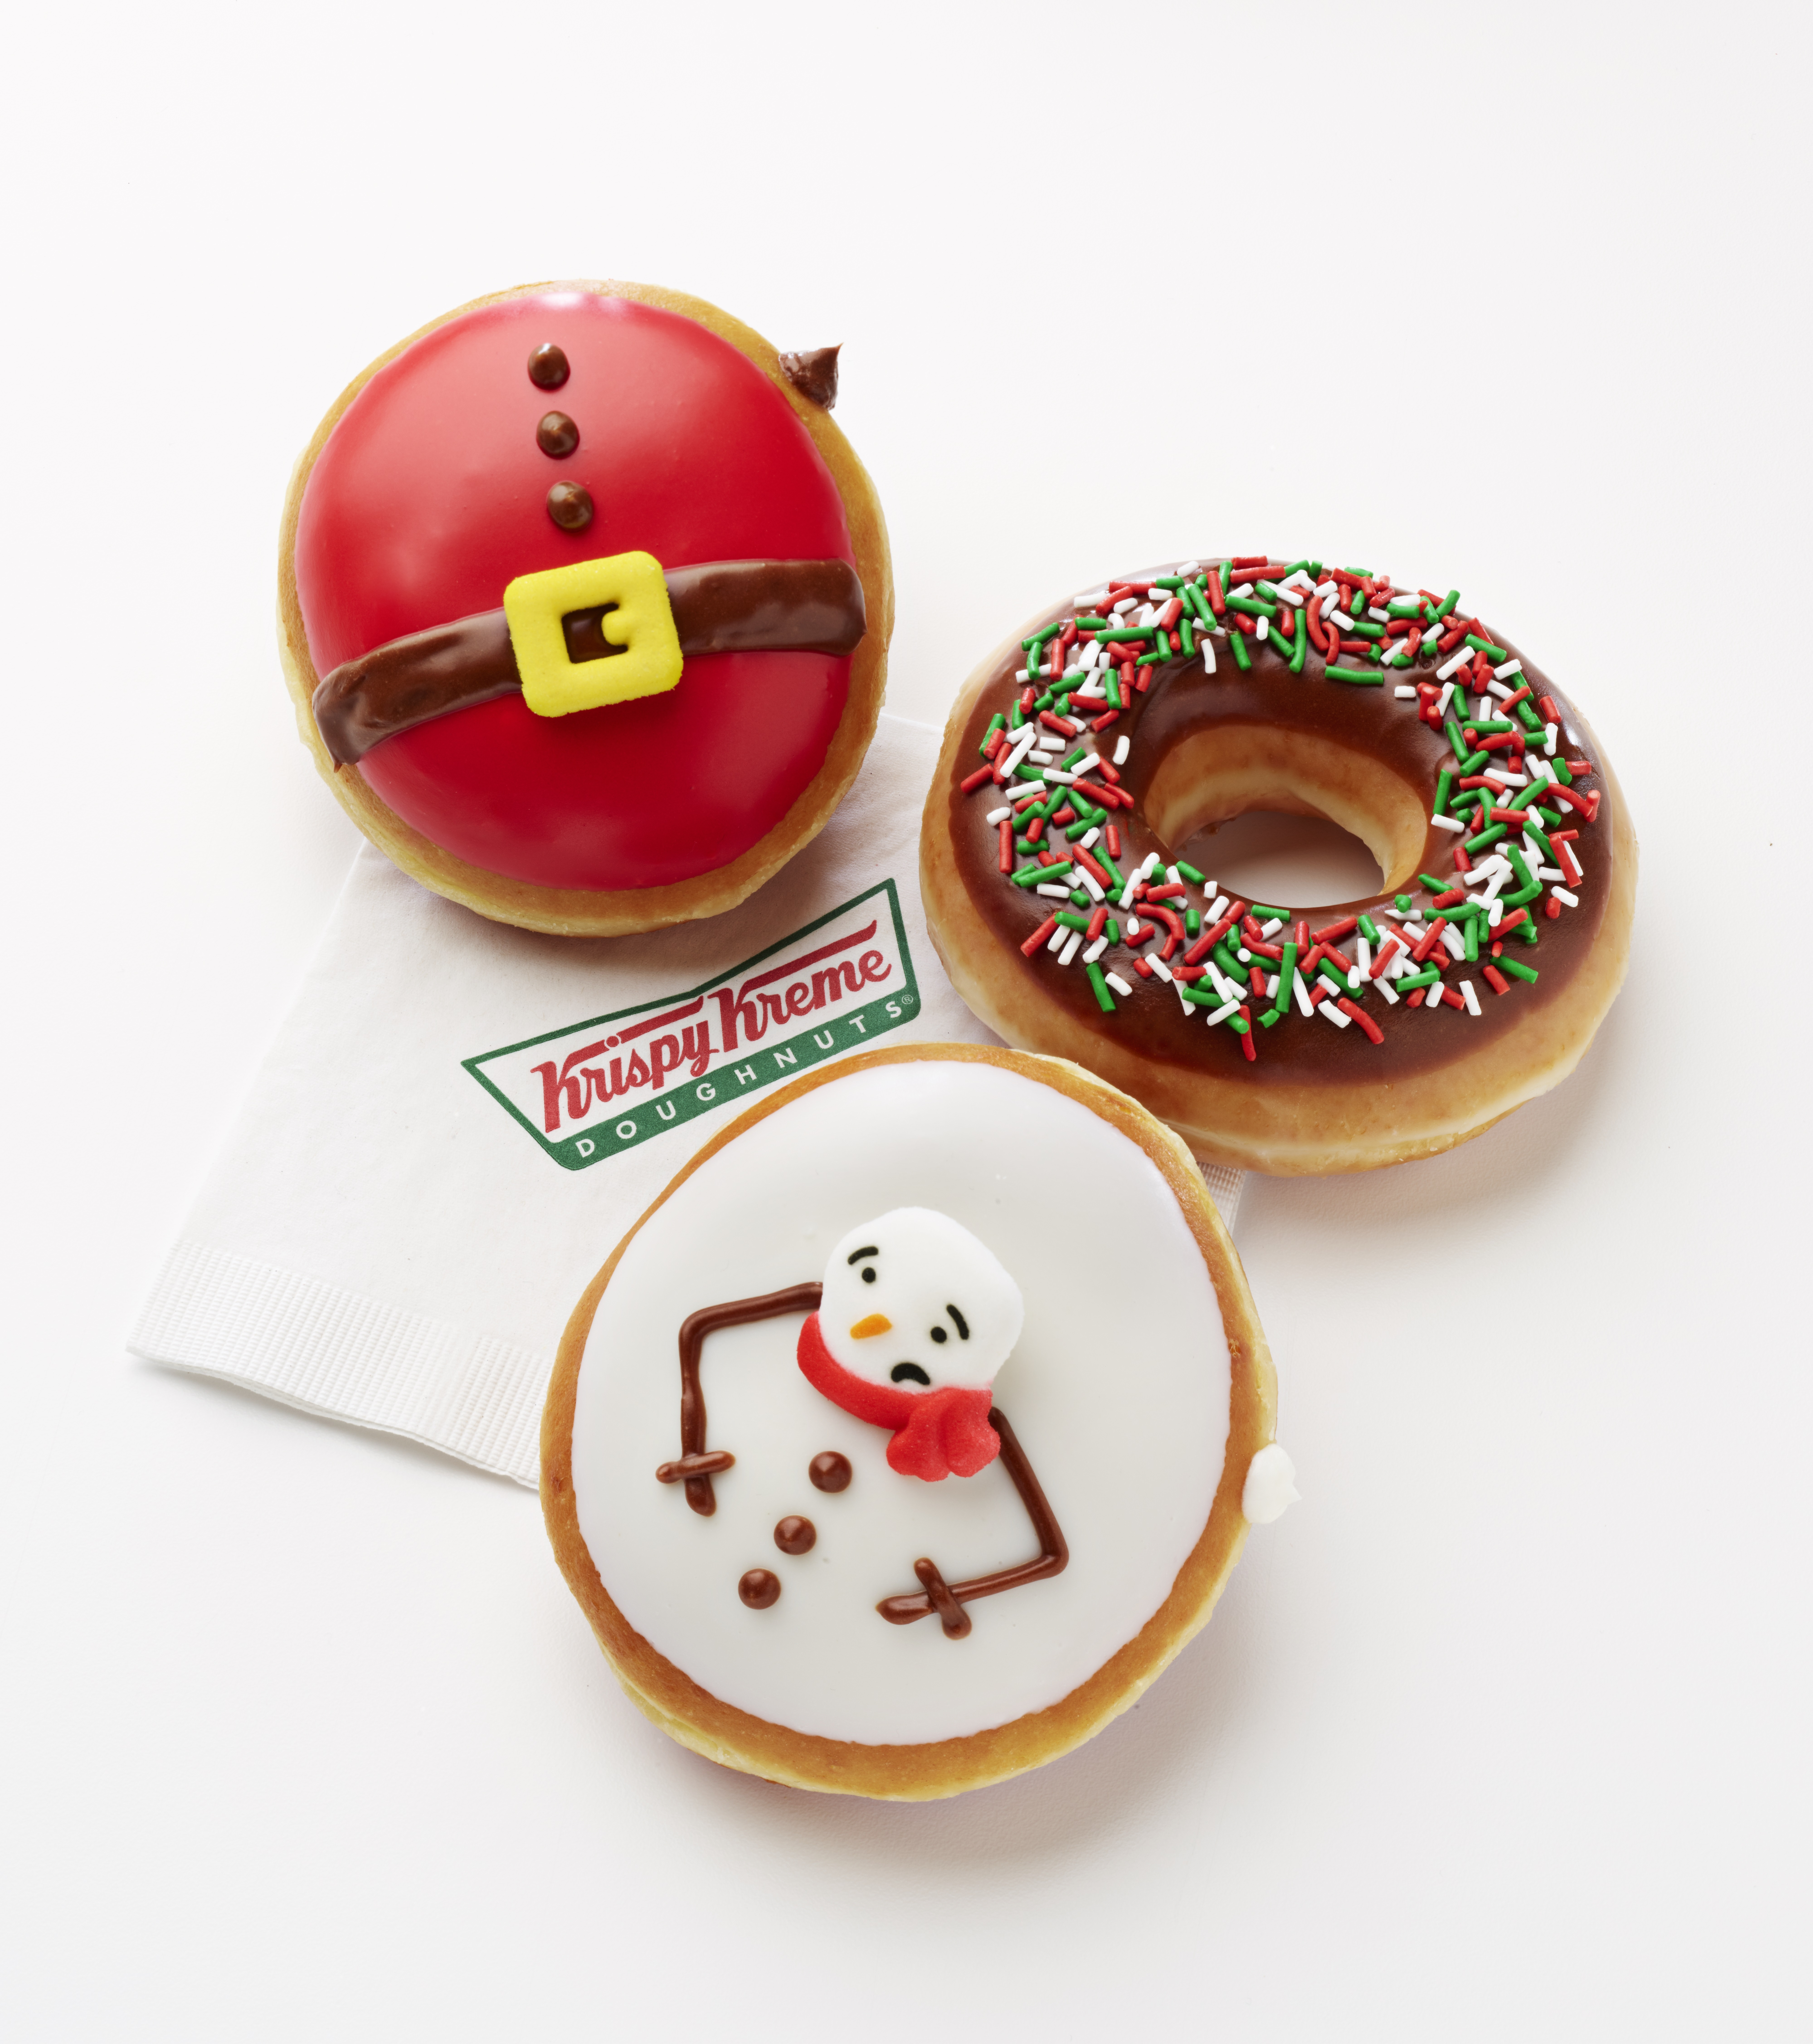 Krispy Kreme Doughnuts introduces holiday-inspired treats